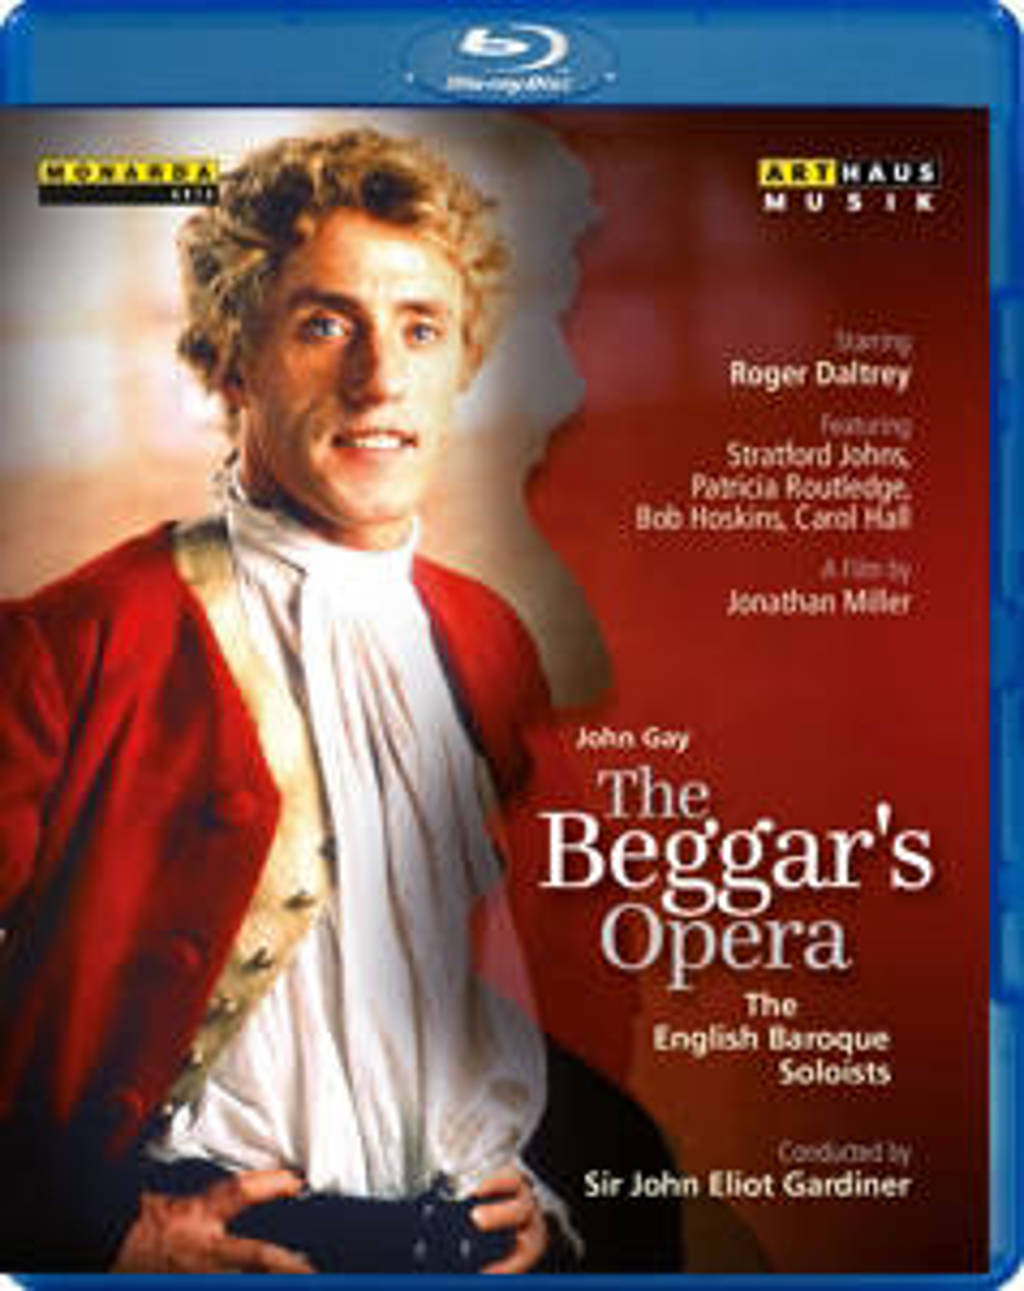 Daltrey,Johns,Routlegde - The Beggars Opera, Gardiner 1983, B (Blu-ray)